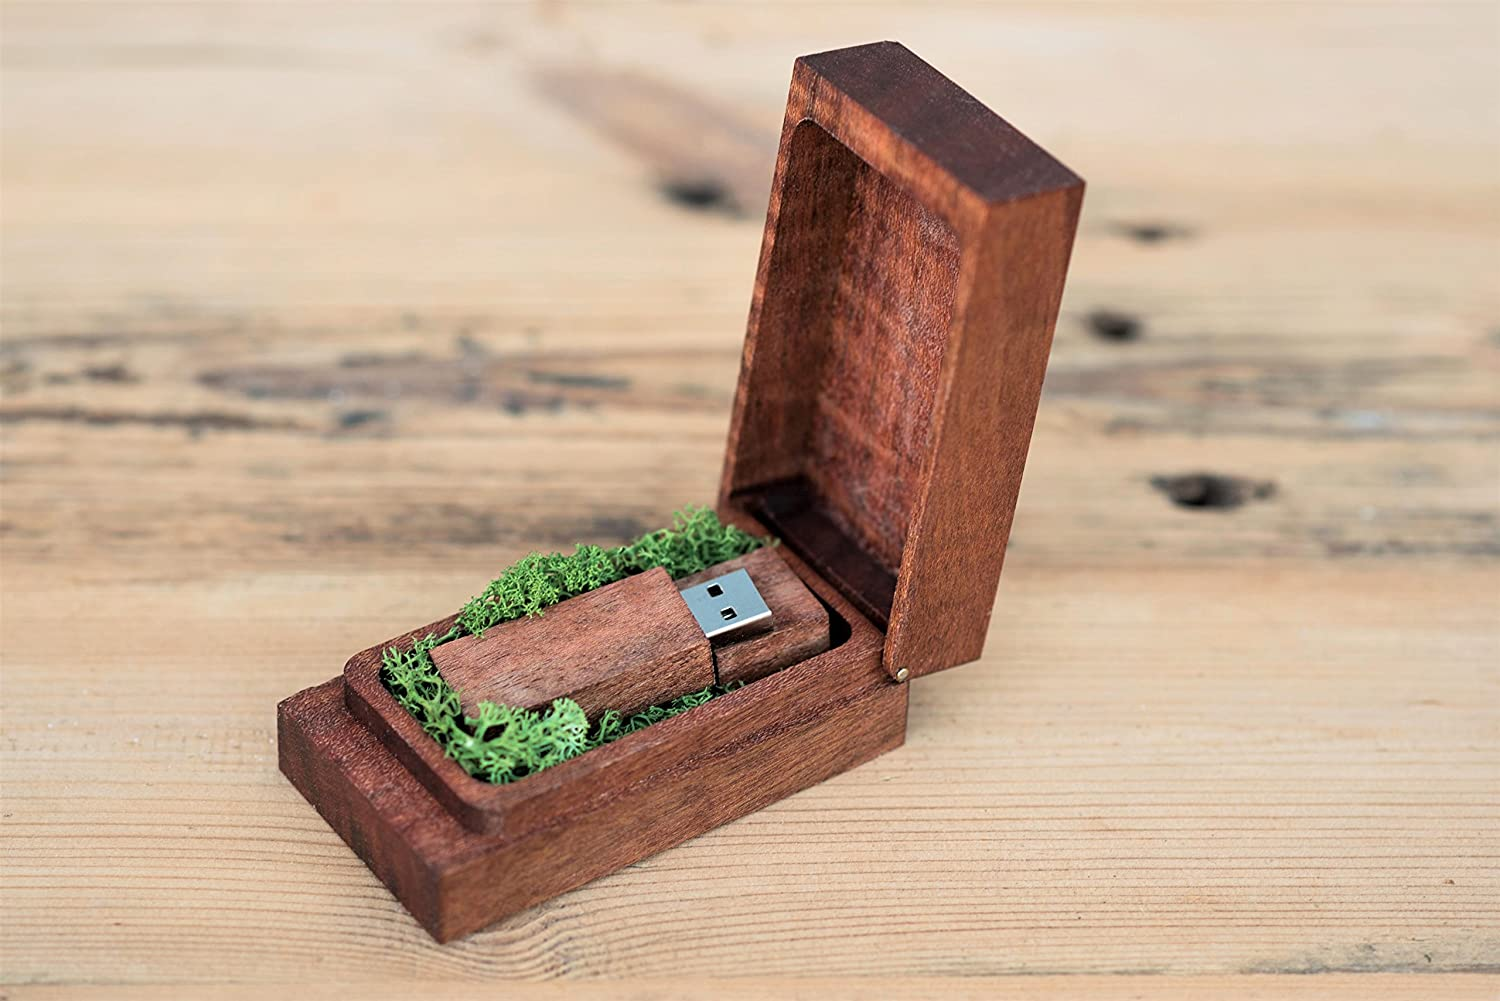 EWART WOODS Wooden Box USB Popular brand Luxury in the world Drive Dr Personalize Flash